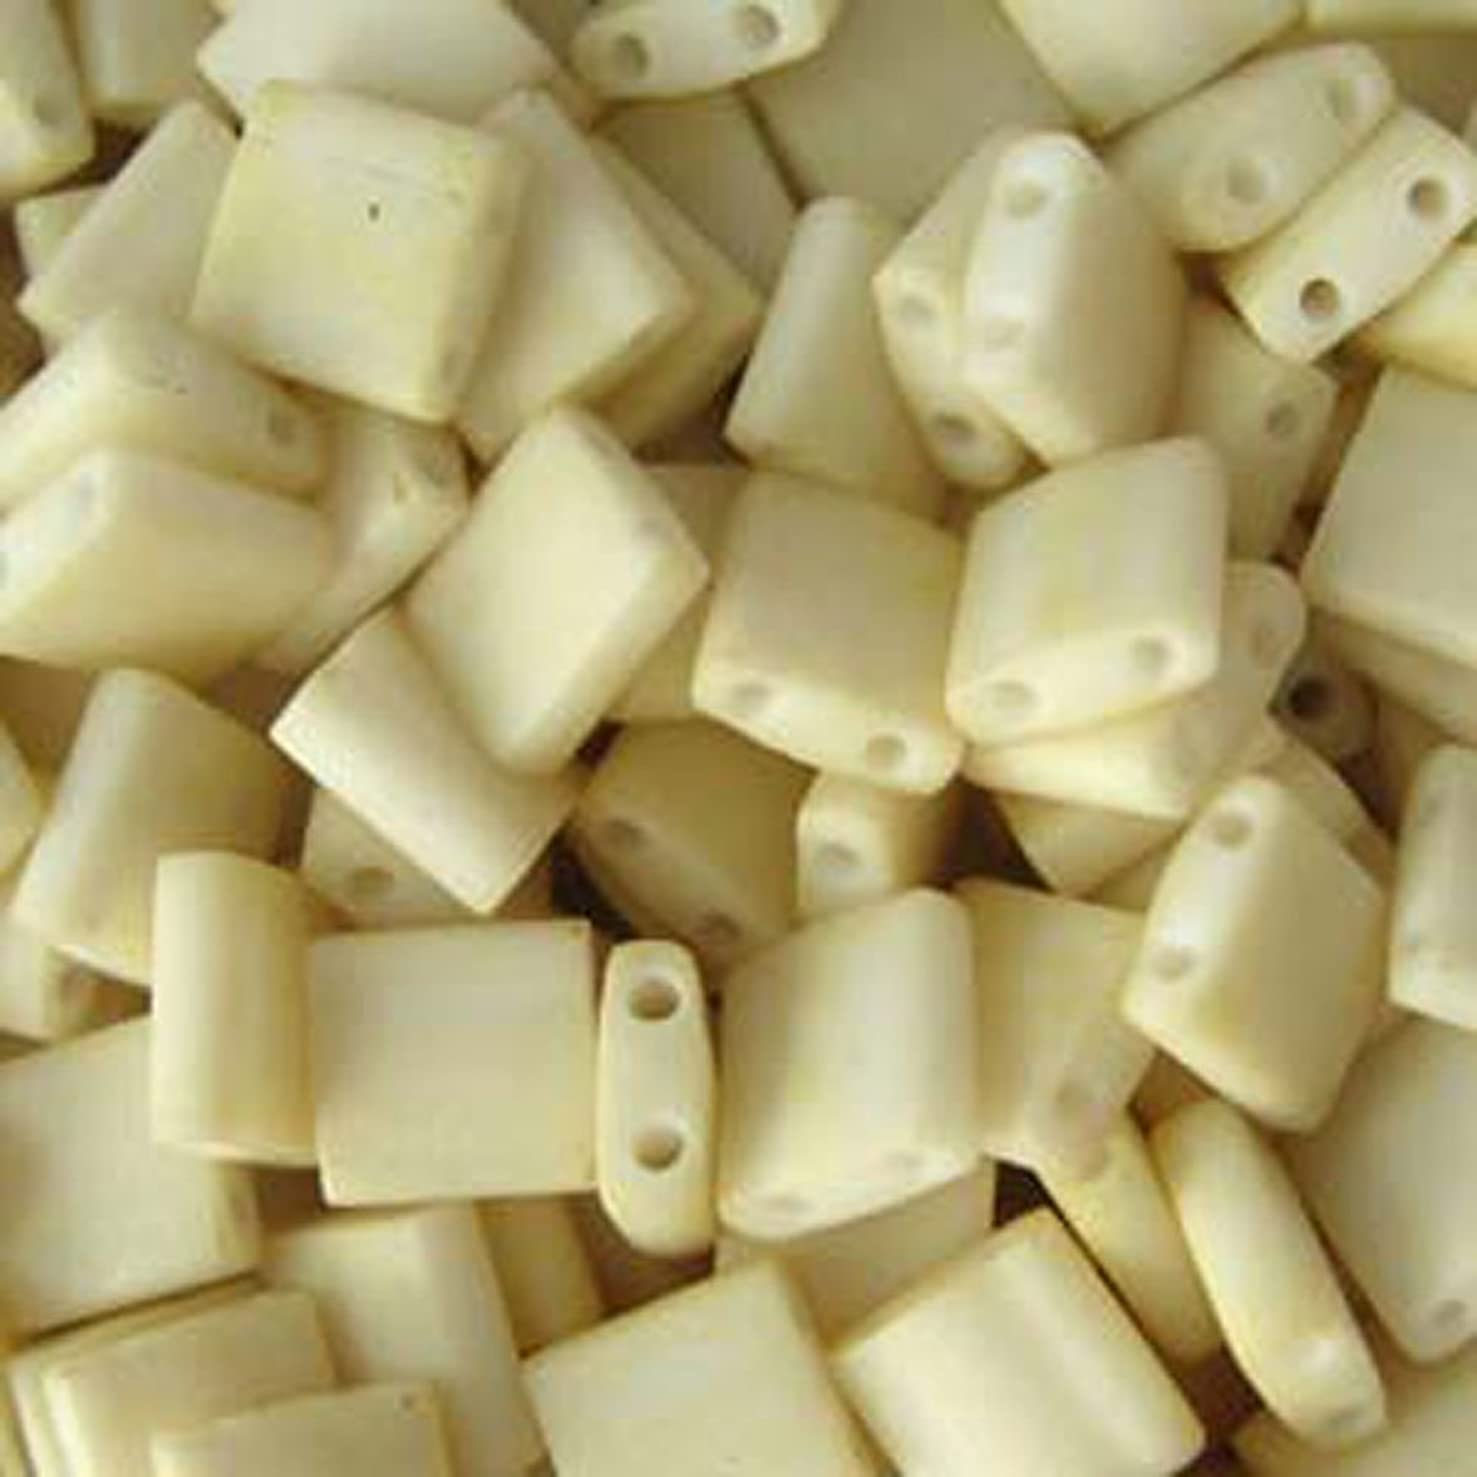 Cream Matte Tila Beads 7.2 Gram Tube By Miyuki Are a 2 Hole Flat Square Seed Bead 5x5mm 1.9mm Thick with .8mm Holes